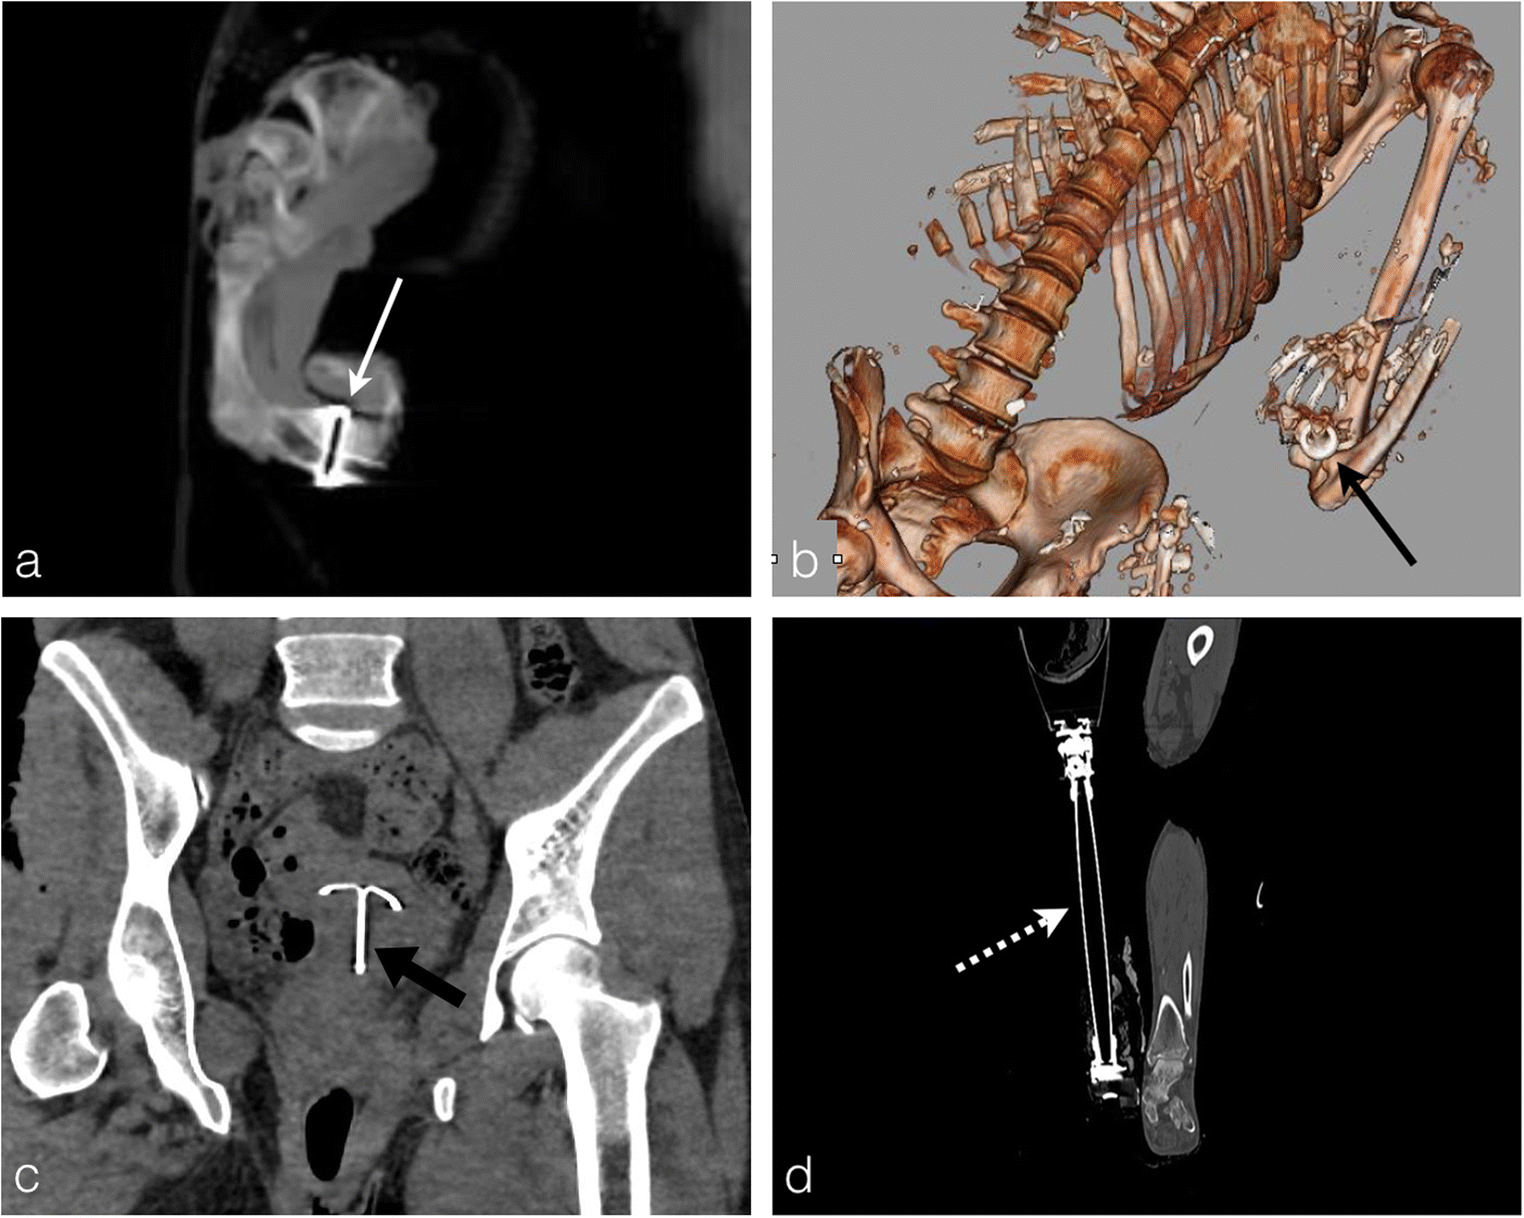 Burned bodies: post-mortem computed tomography, an essential